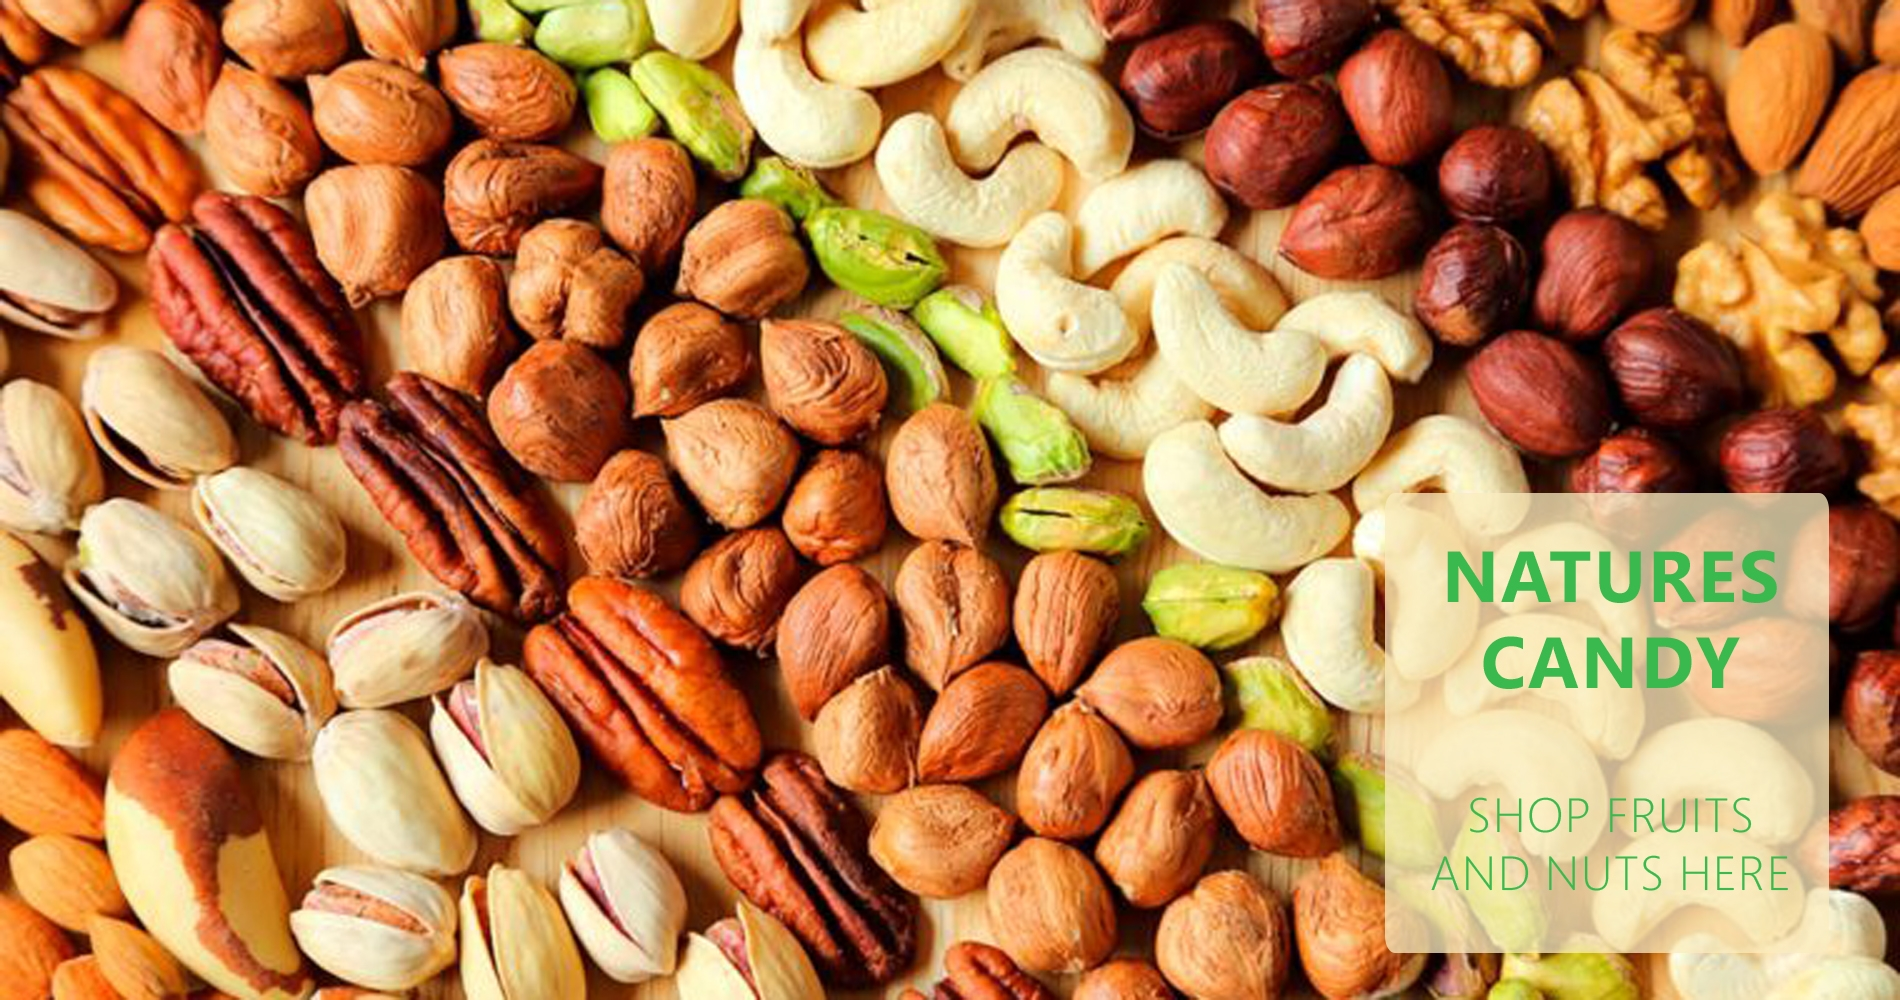 Natures Candy, Shop all fruit and Nuts here